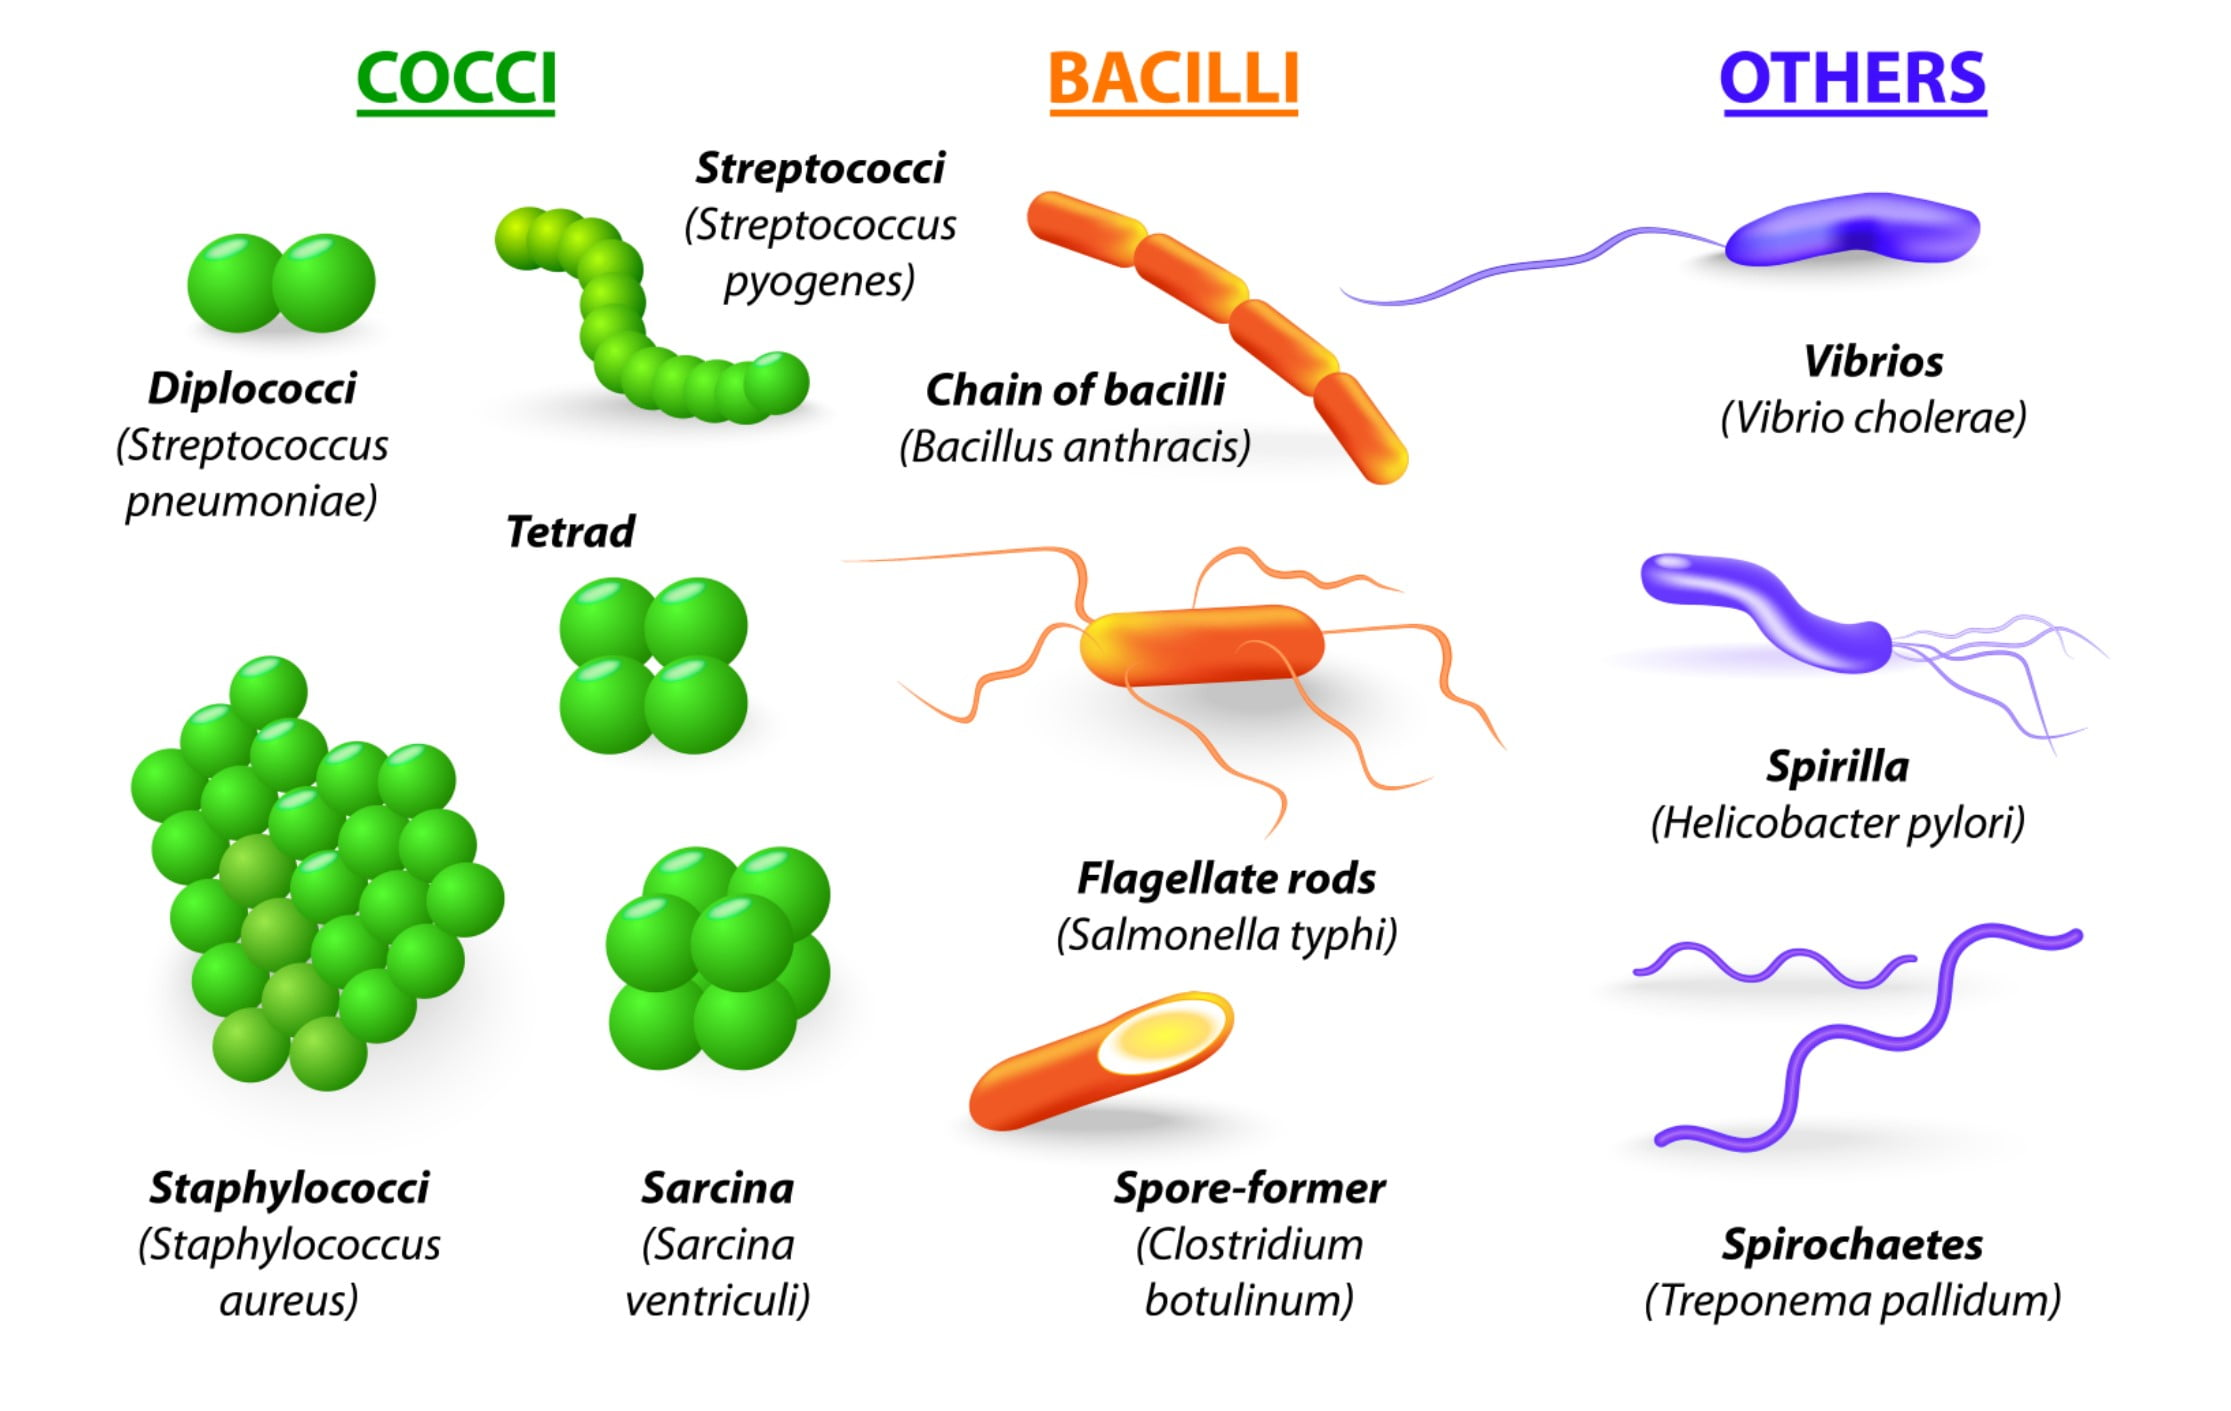 The different shapes of bacteria